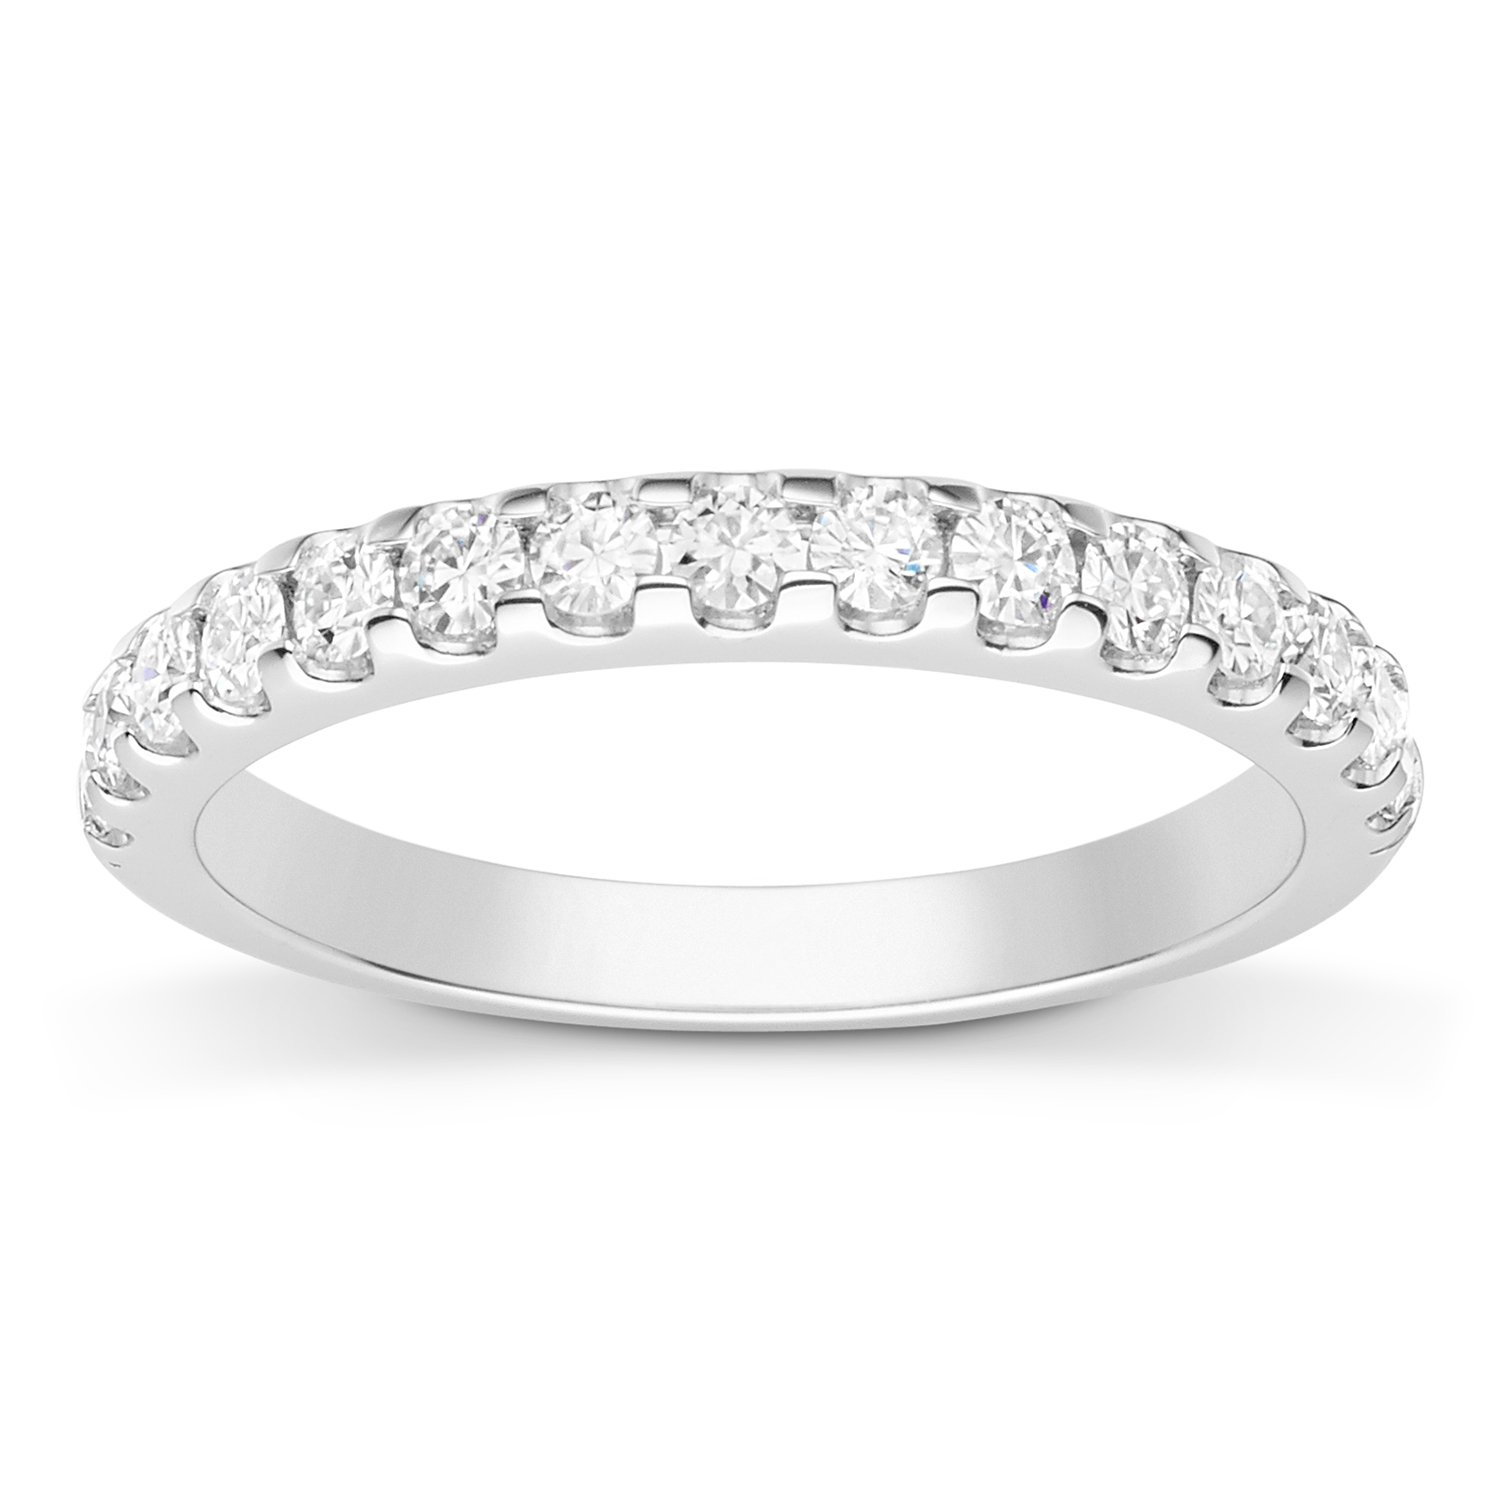 Forever Classic 2.0mm Moissanite Wedding Band-size 9, 0.45cttw DEW by Charles & Colvard